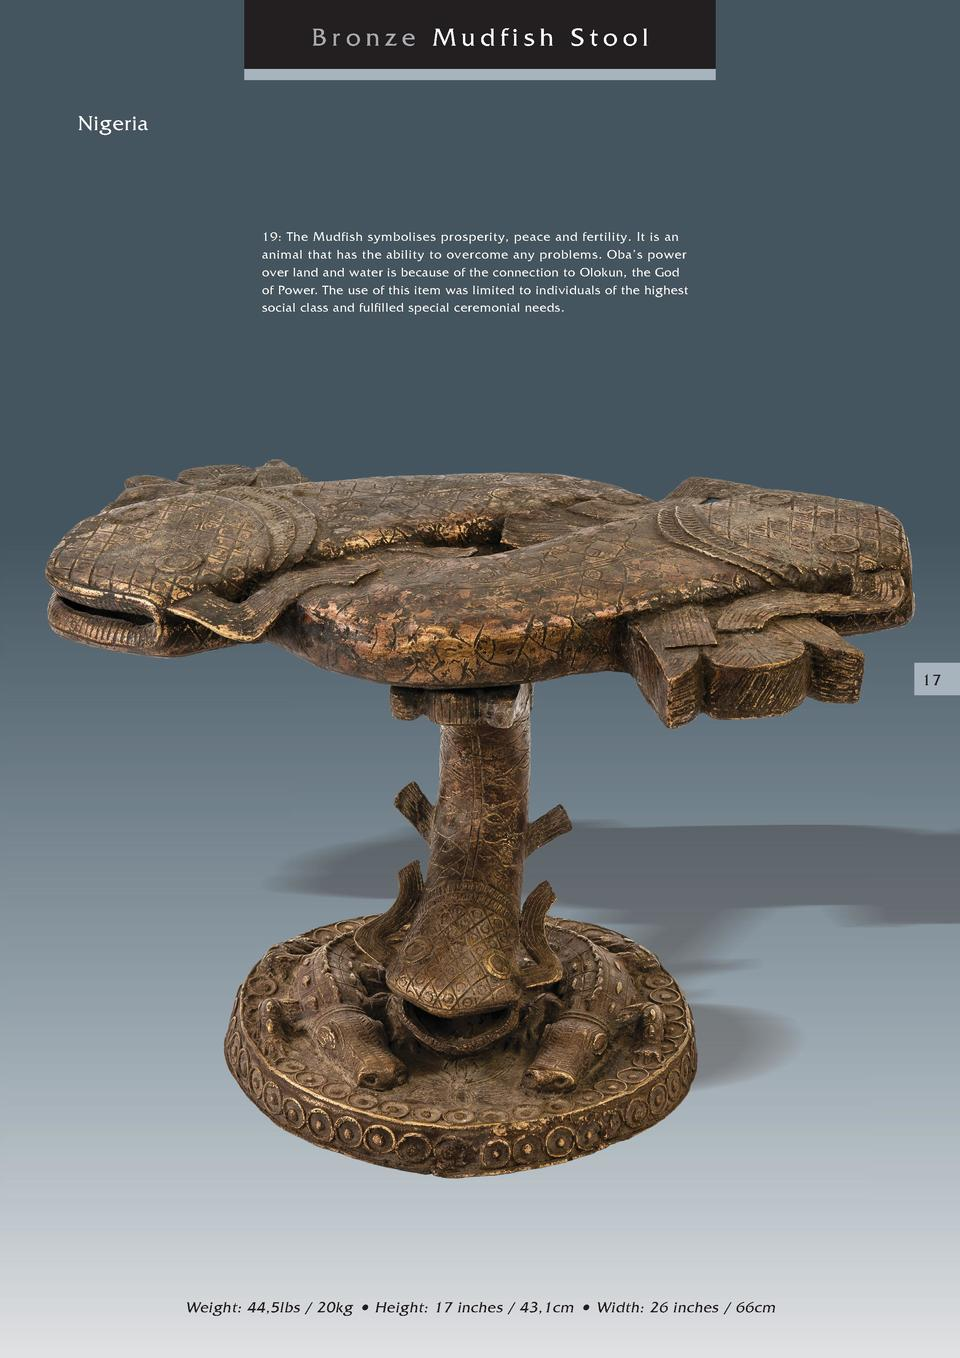 Bronze Mudfish Stool Nigeria  19  The Mudfish symbolises prosperity, peace and fertility. It is an animal that has the abi...